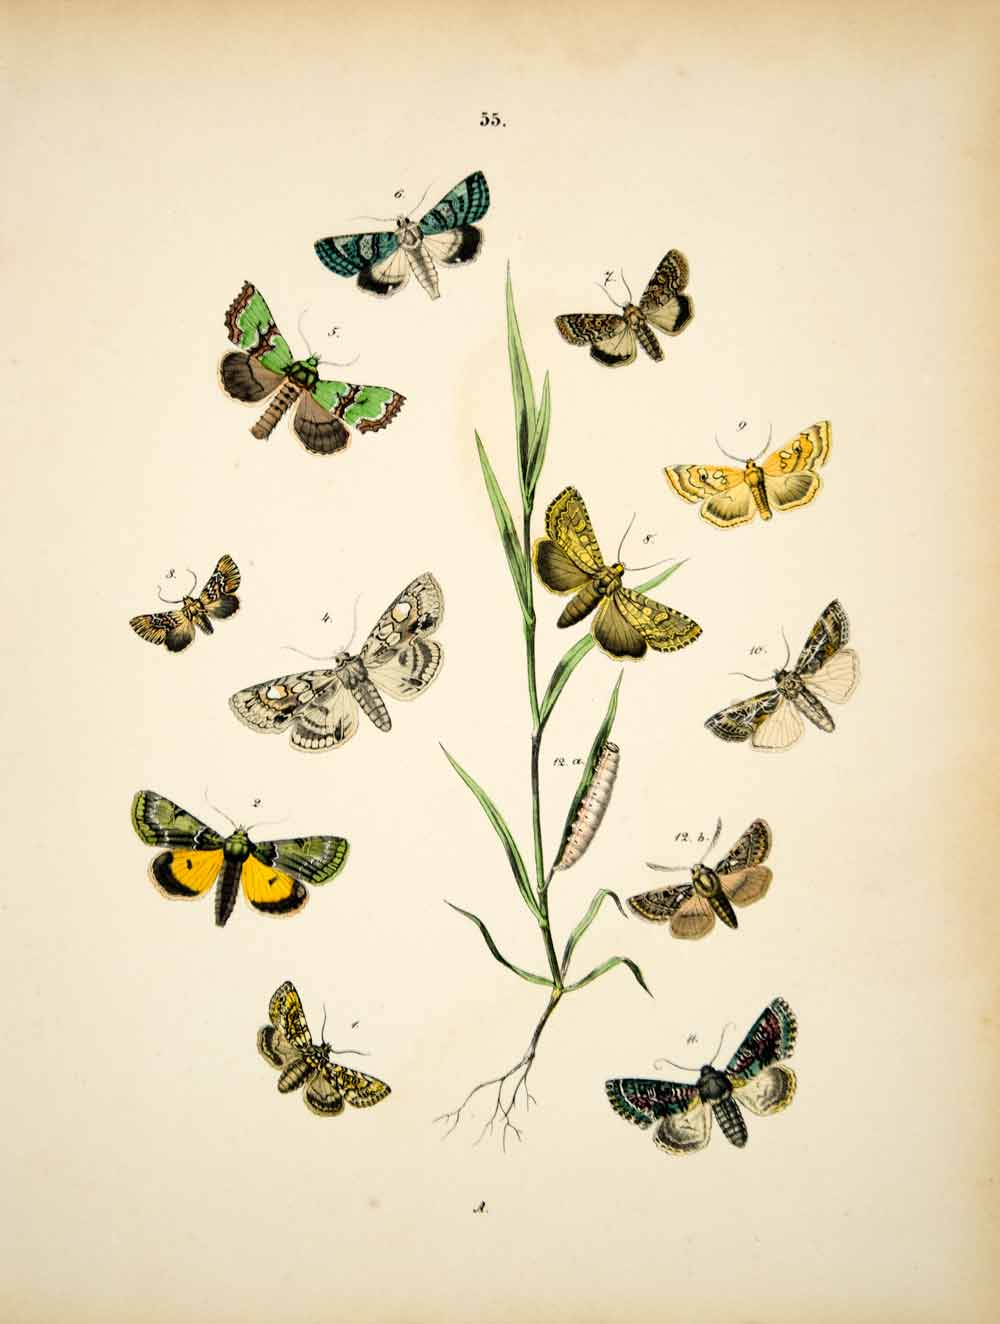 1882 Hand-Colored Lithograph WF Kirby Art Tawny Shears Moth Insect Bugs EBM1